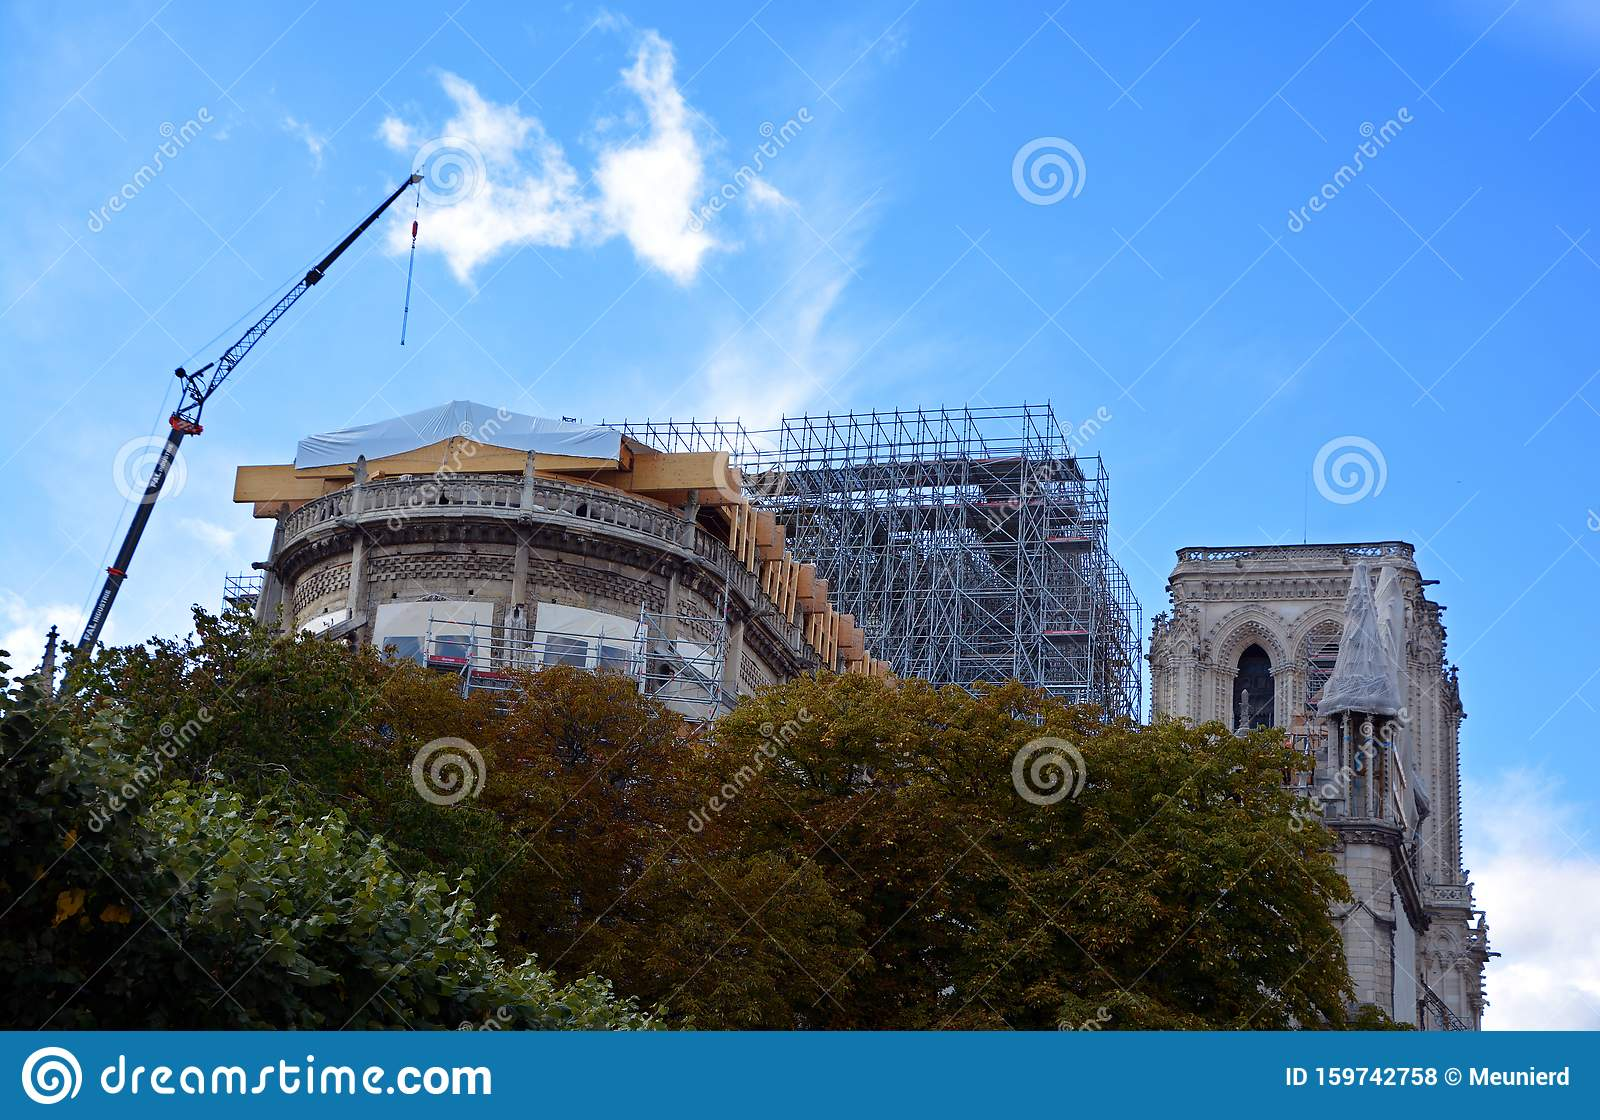 Notre Dame De Paris Reinforcement And Reconstruction Work Editorial Stock Photo Image Of Disaster France 159742758